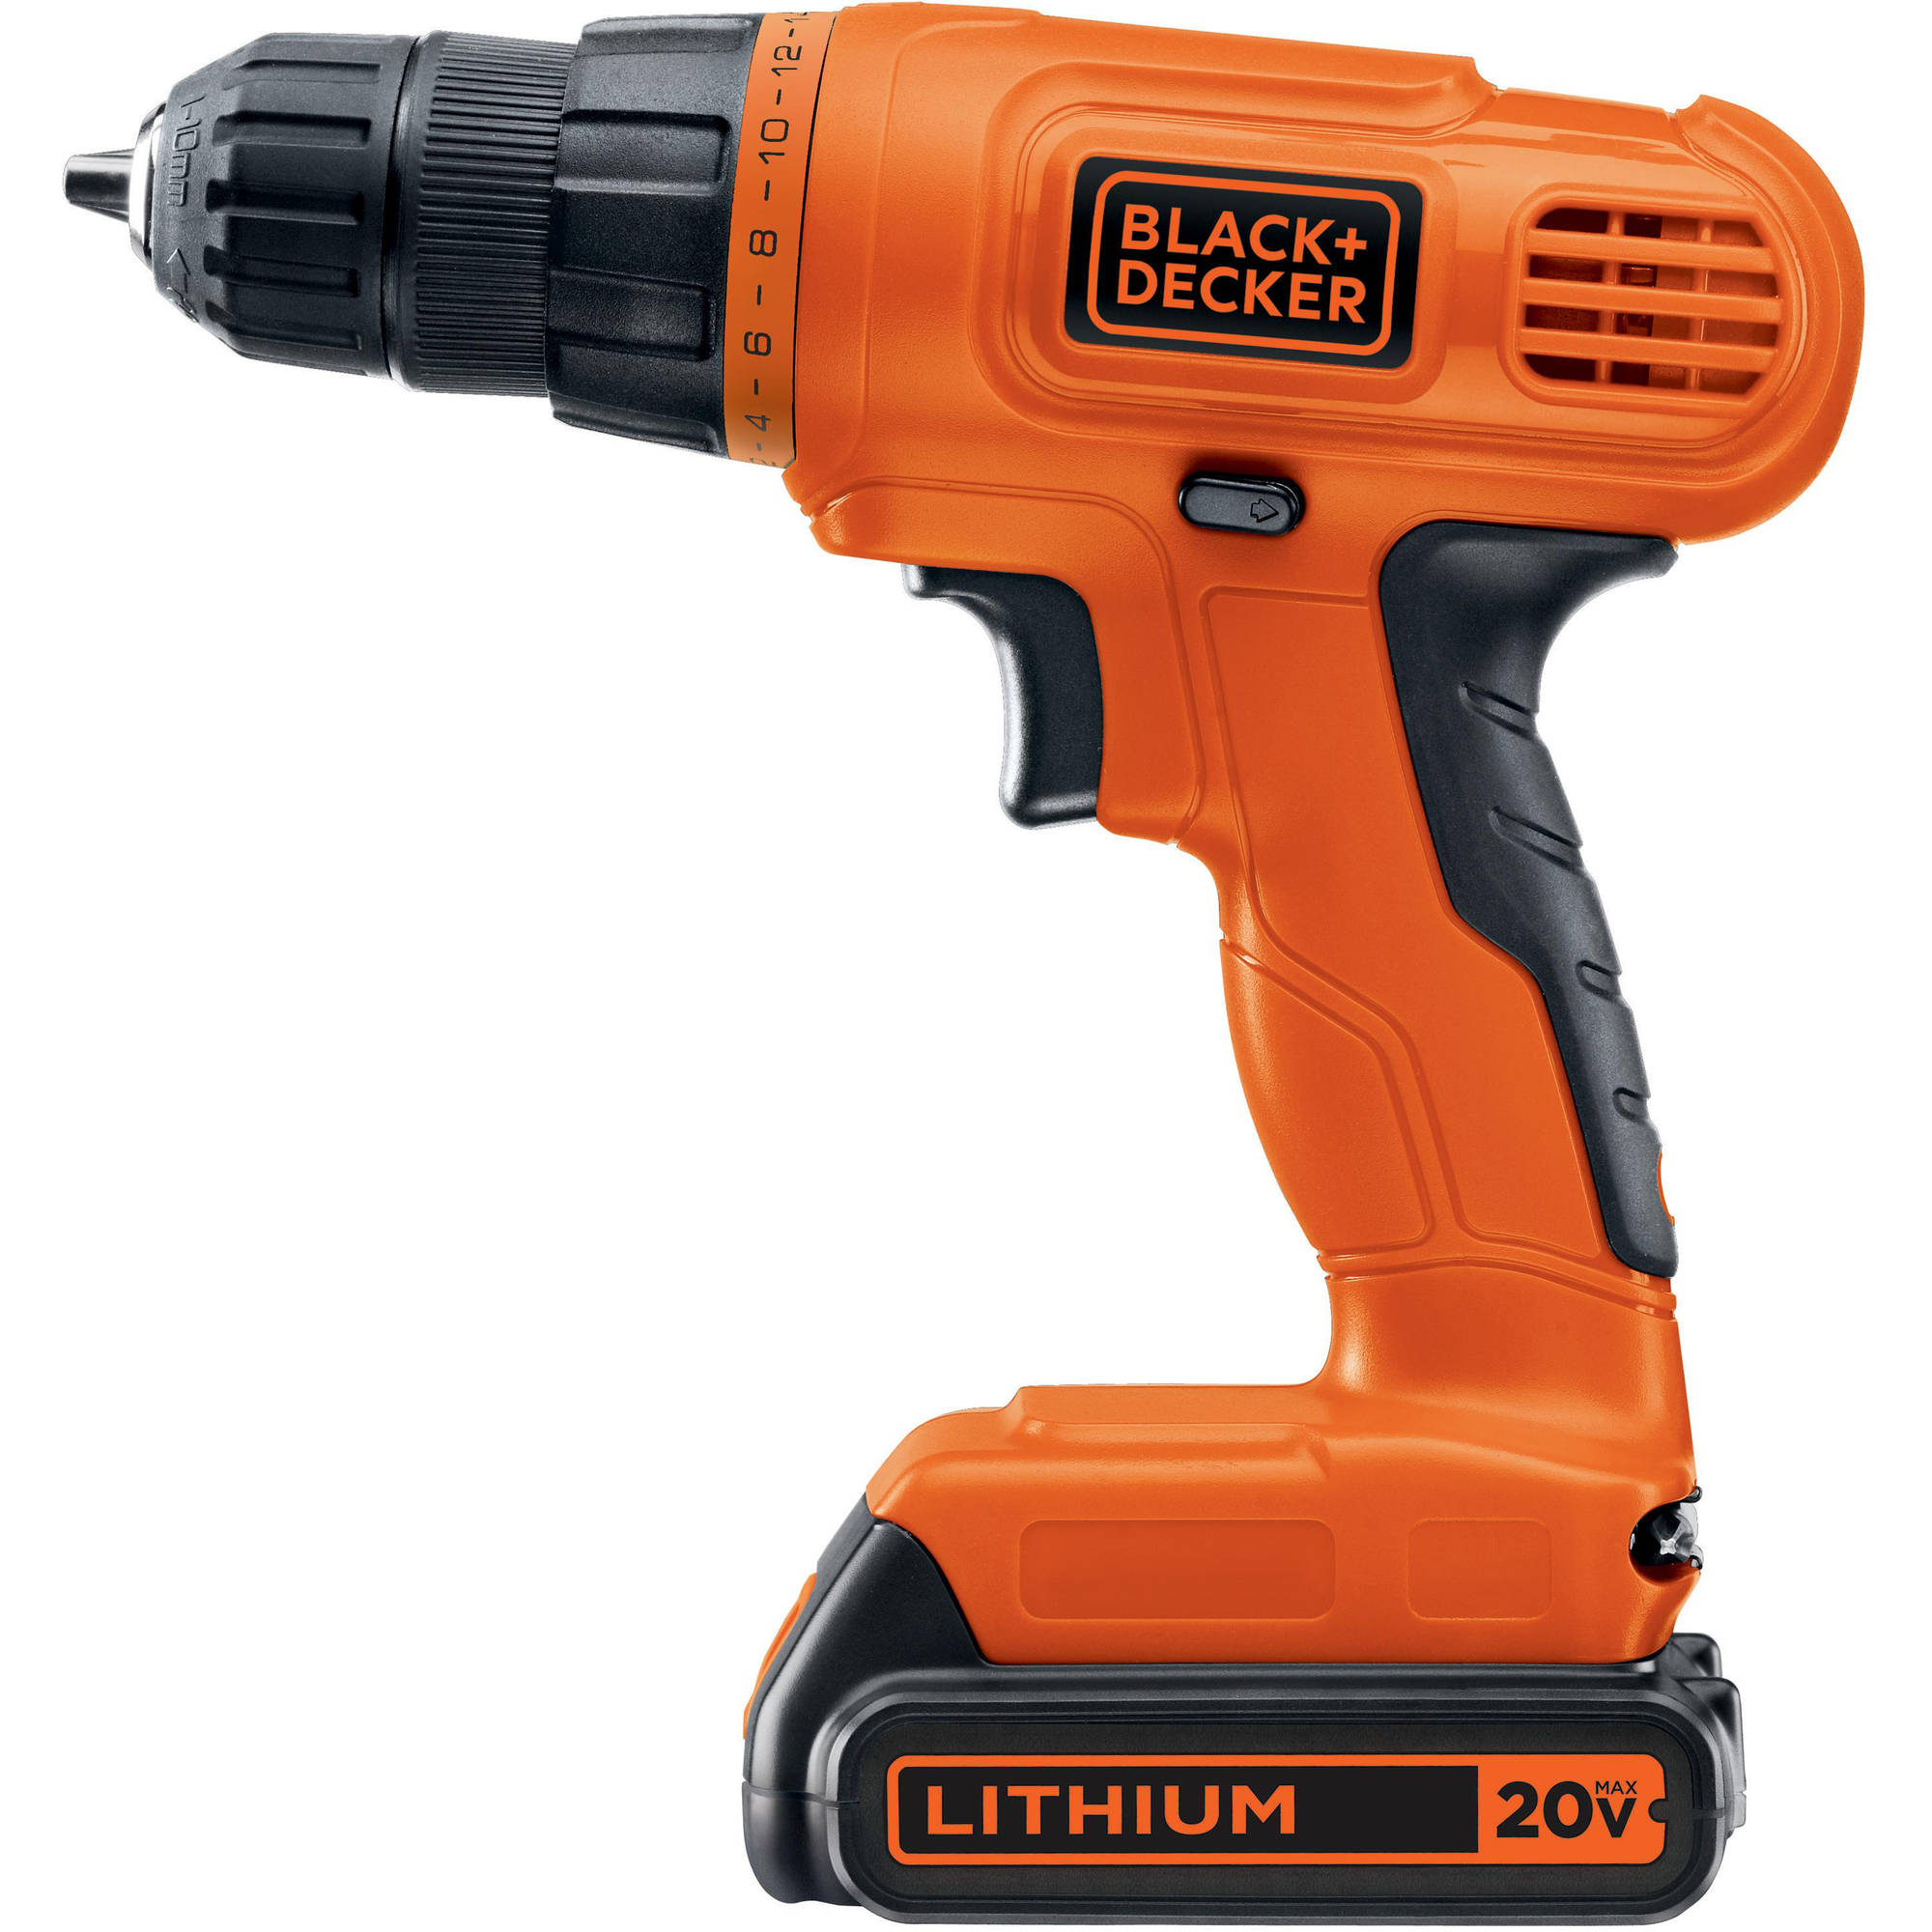 black and decker 20v lithium drill driver with 128 piece project kit 687928890090 ebay. Black Bedroom Furniture Sets. Home Design Ideas